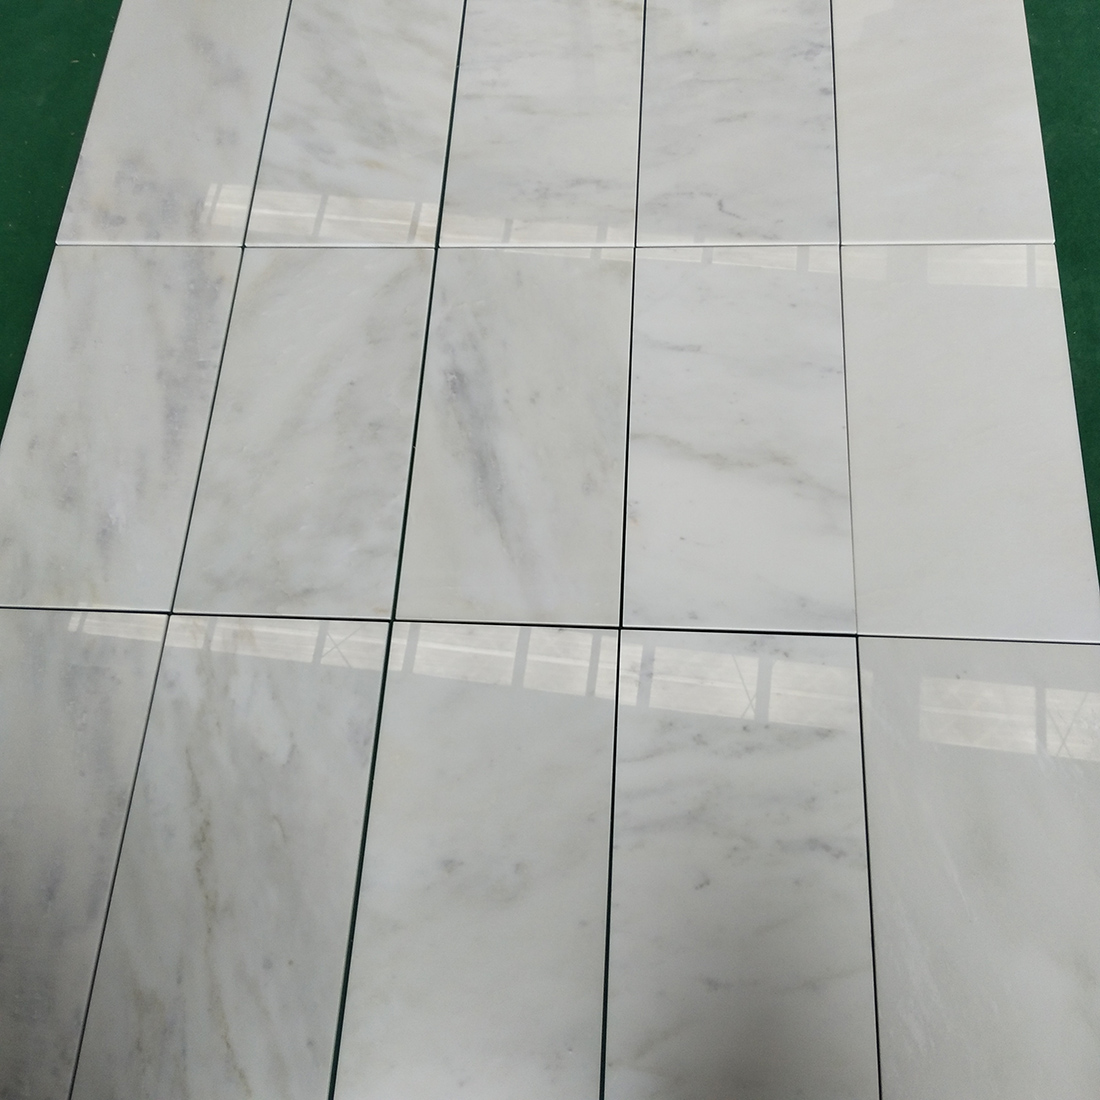 Kangba Jade White Marble Tiles  Slabs China White Marble Floor Covering  Tiles